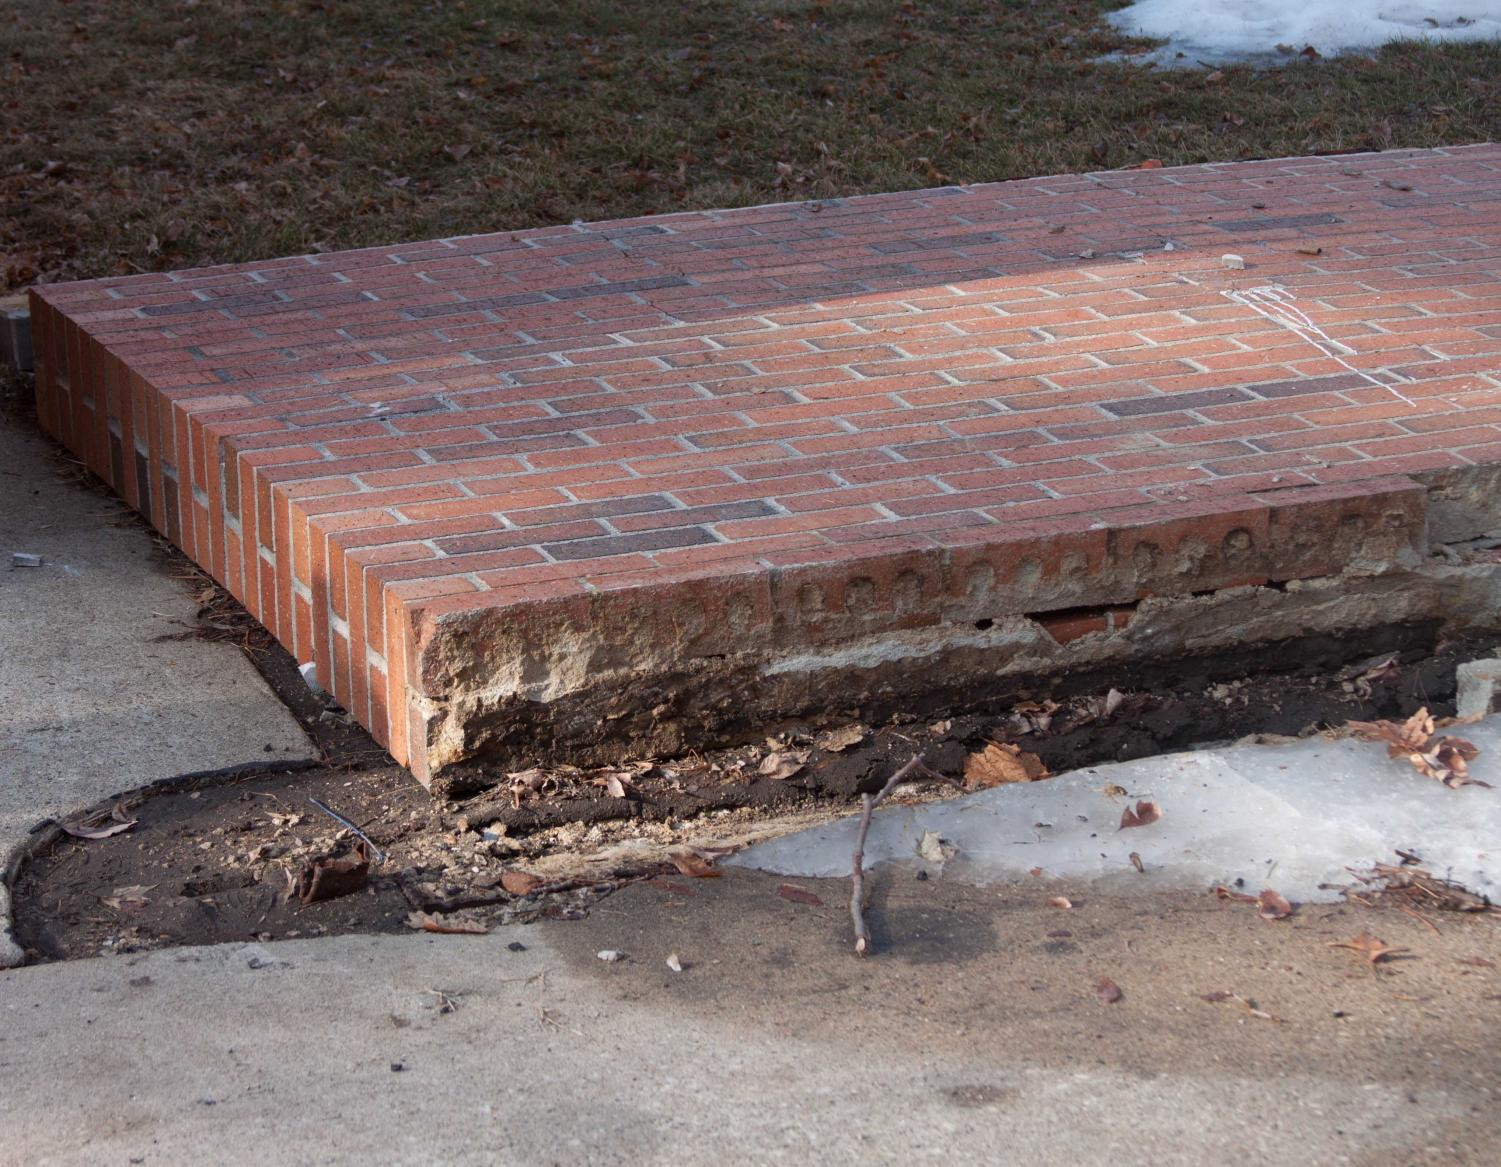 The wall outside the ITC collapsed, but it is not integral to the building structure. Russell Roth, however, commented that some internal walls are buckling in an interview with the Waterloo-Cedar Falls Courier.